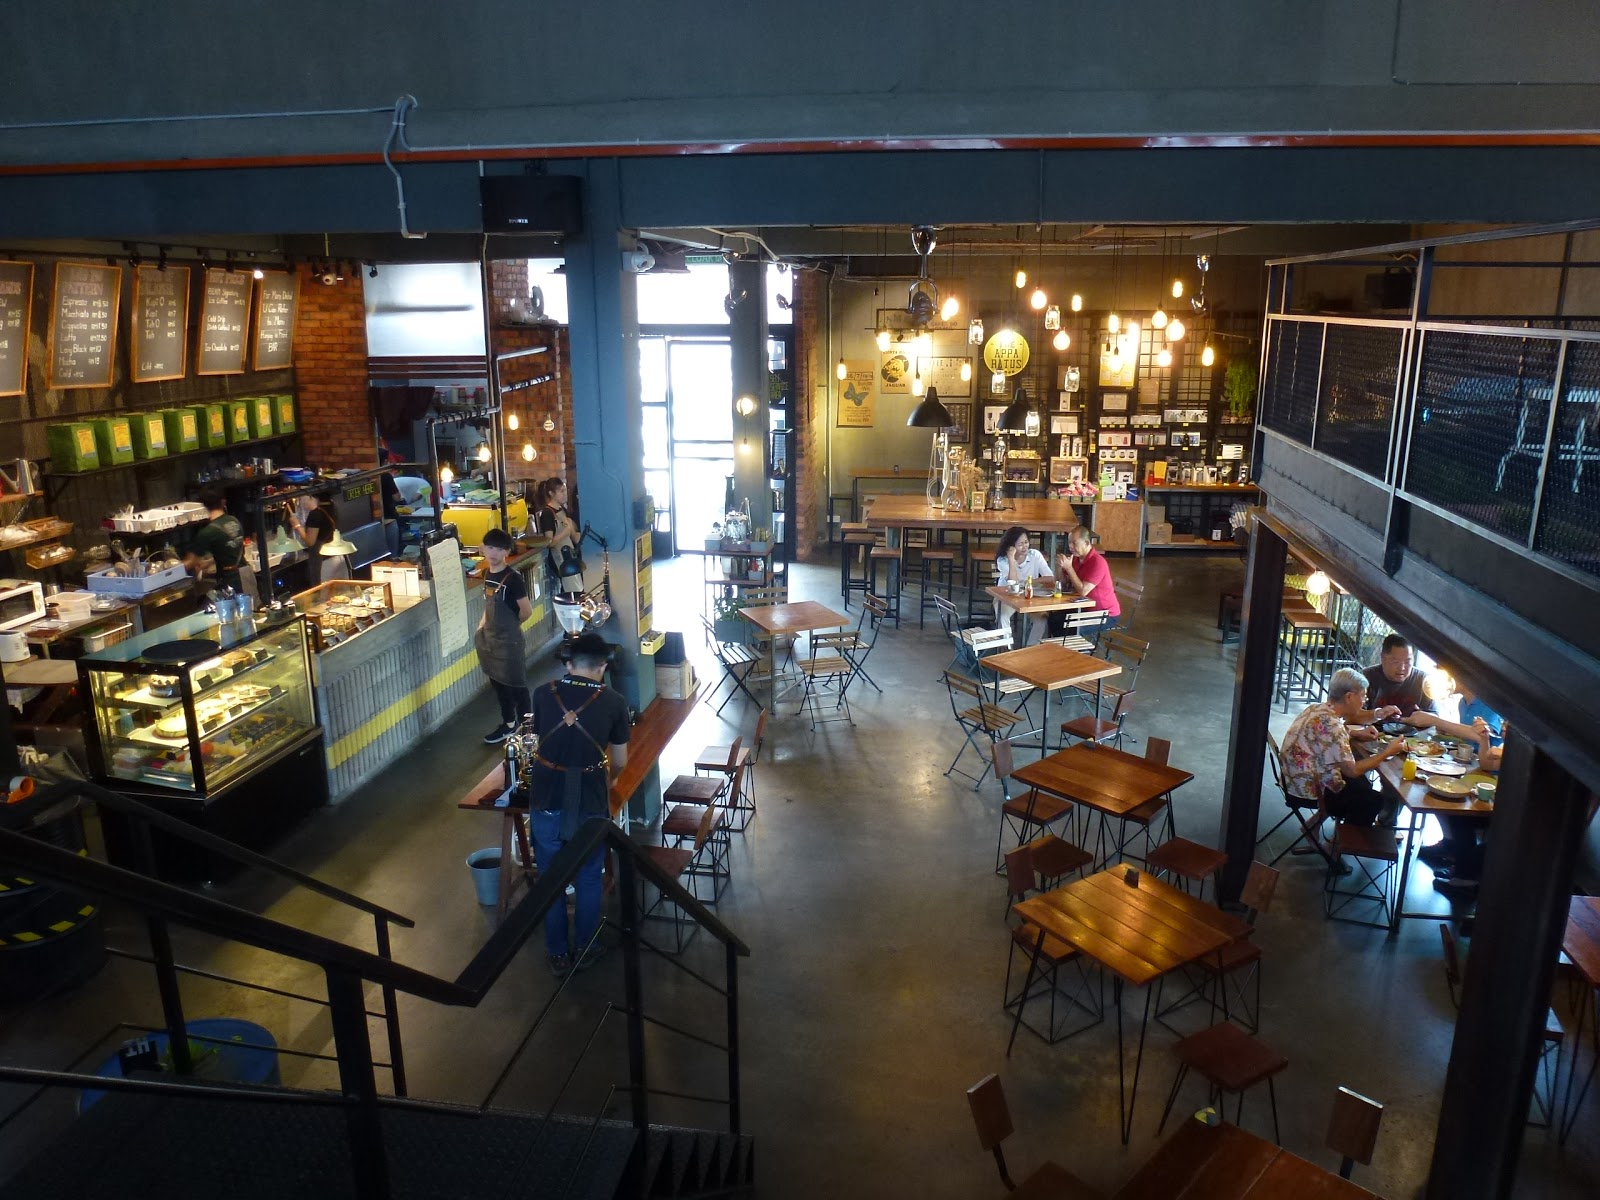 An aerial view of a cafe